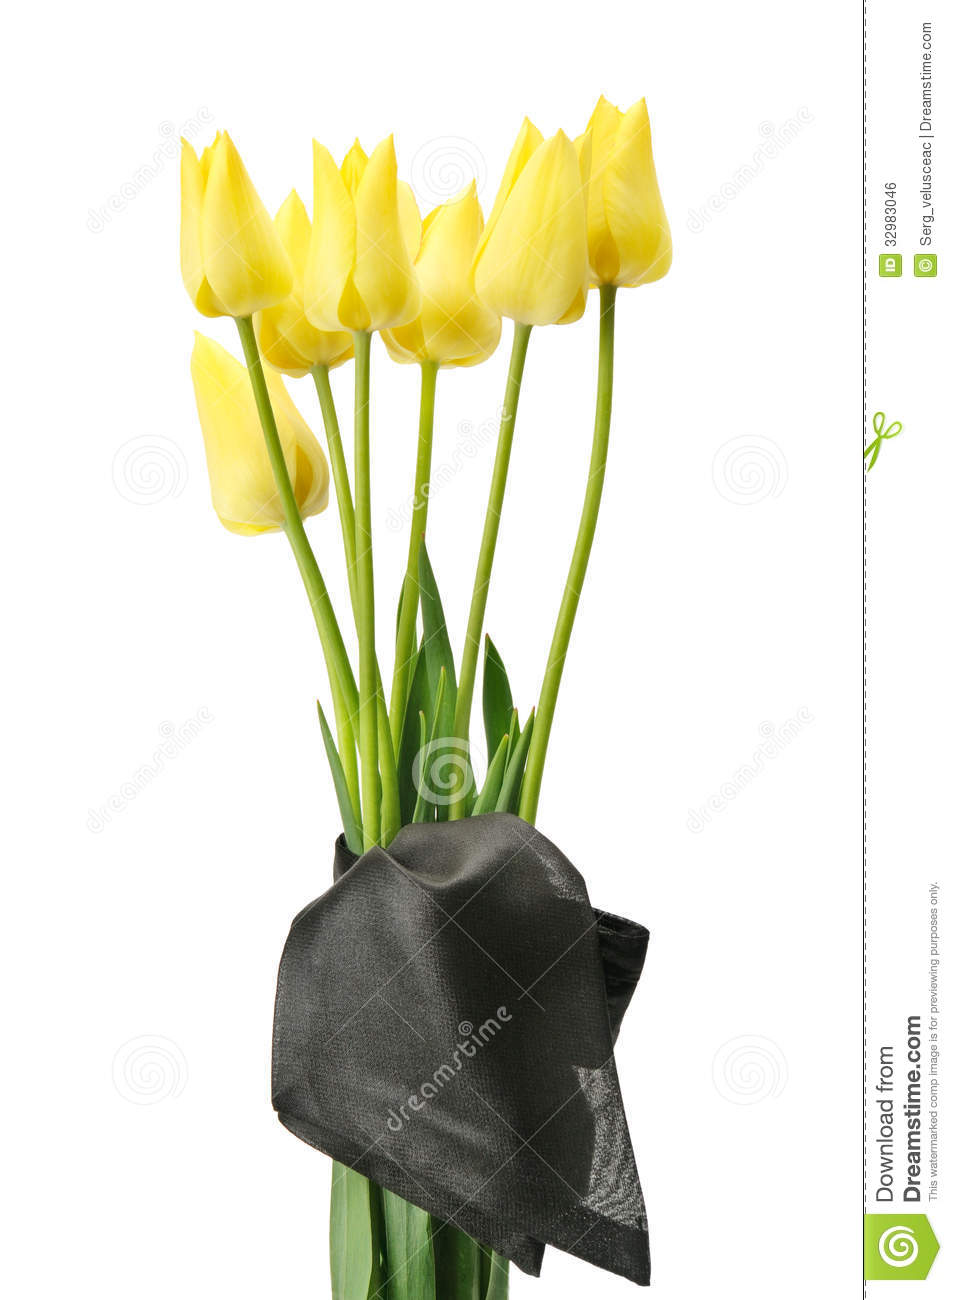 Bouquet of yellow flowers for a funeral stock photo image of love bouquet of yellow flowers for a funeral izmirmasajfo